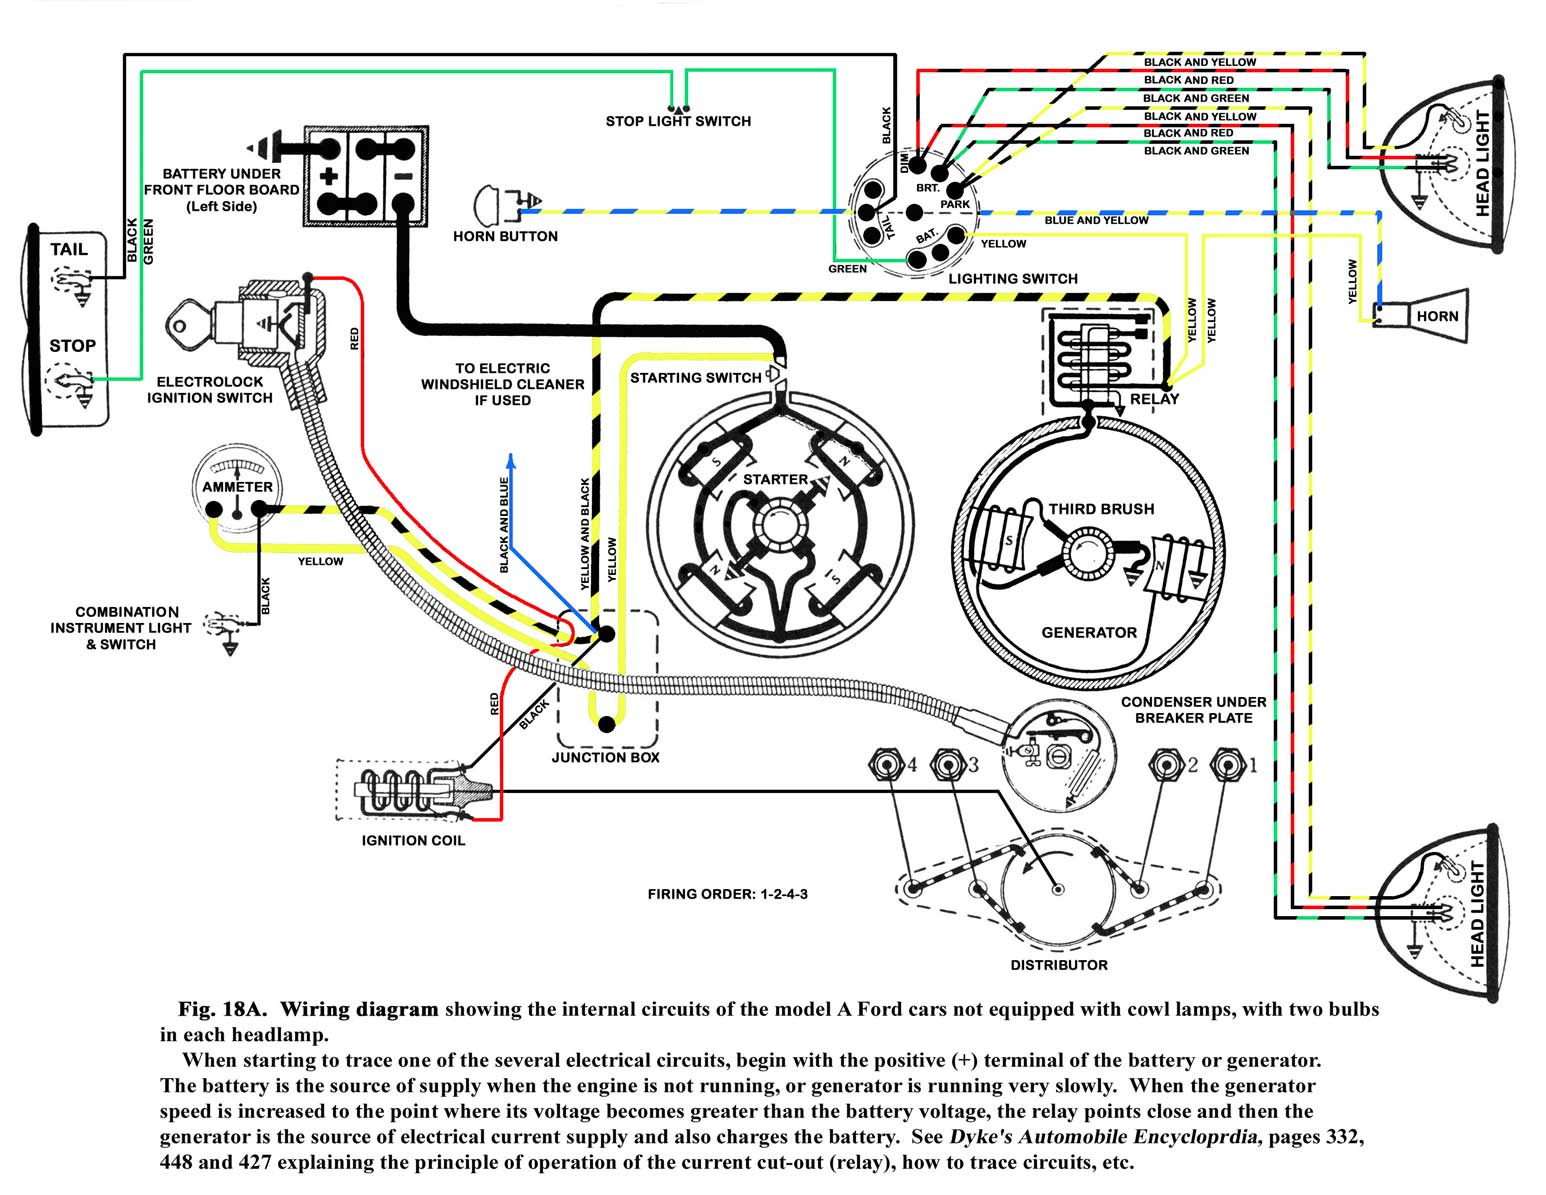 model wiring diagram schematics data diagram ford 800 tractor wiring diagram model a ford generator wiring [ 1546 x 1195 Pixel ]